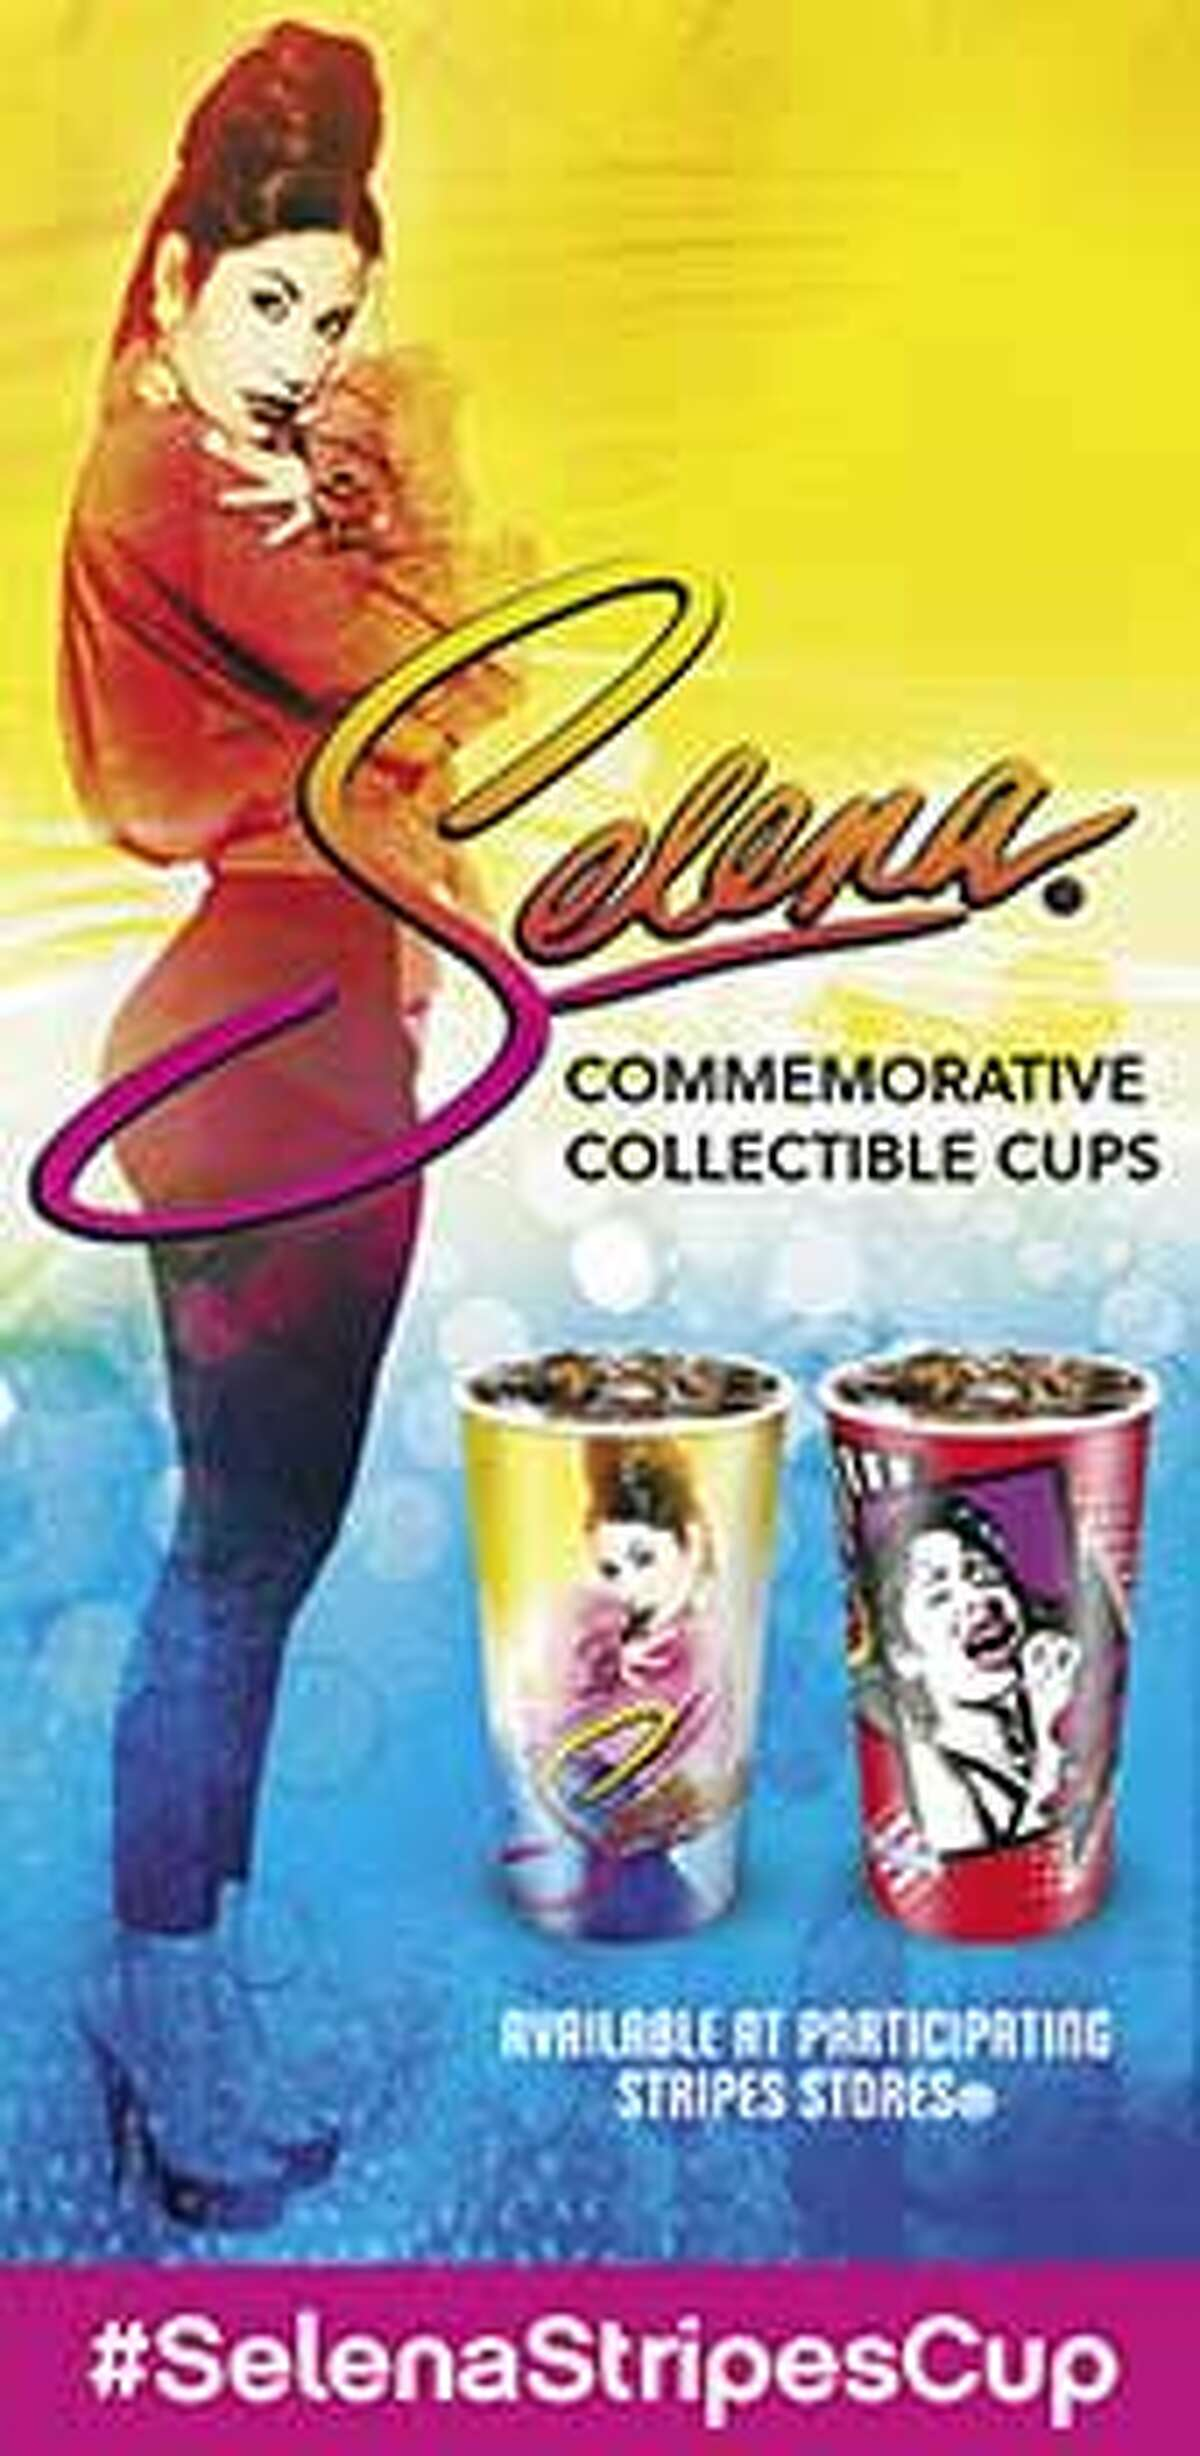 Stripes Convenience Stores is giving fans the opportunity to sip Selena-style with a new line of limited edition cups.